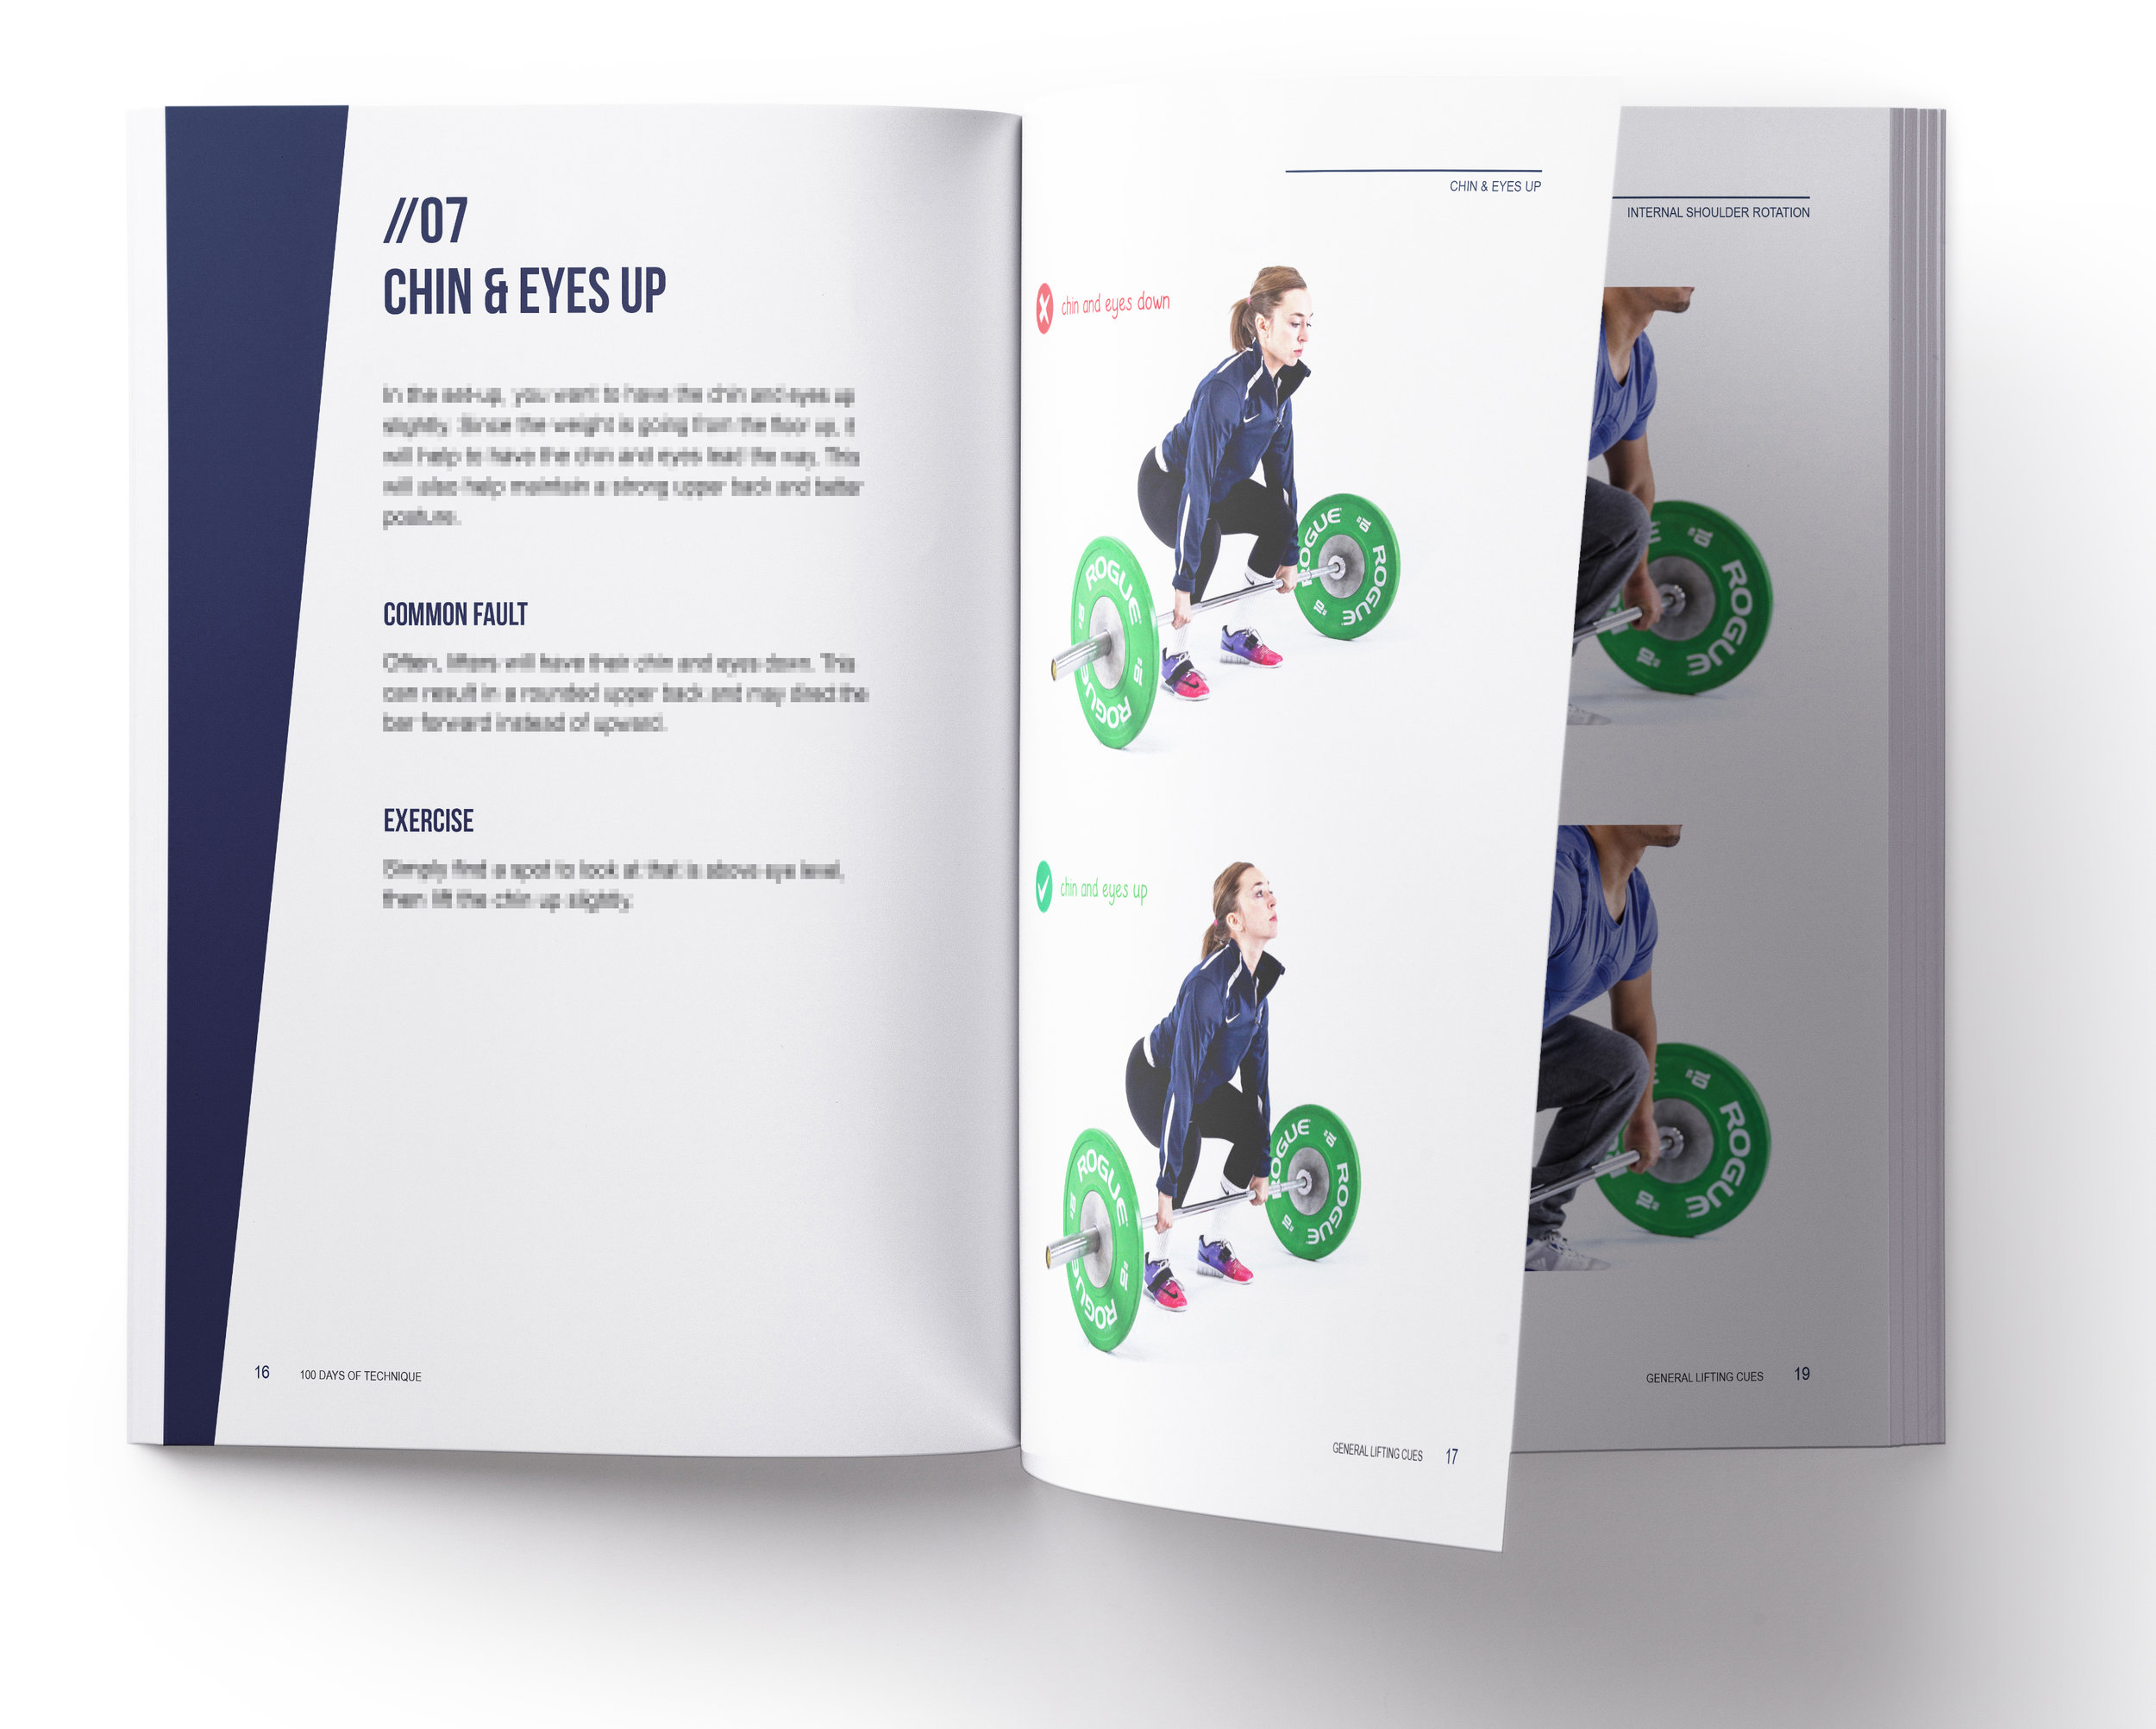 Through simple but critical steps, - this book provides lifters with cues, tips, and advice that has been used, tested, and proven to work.